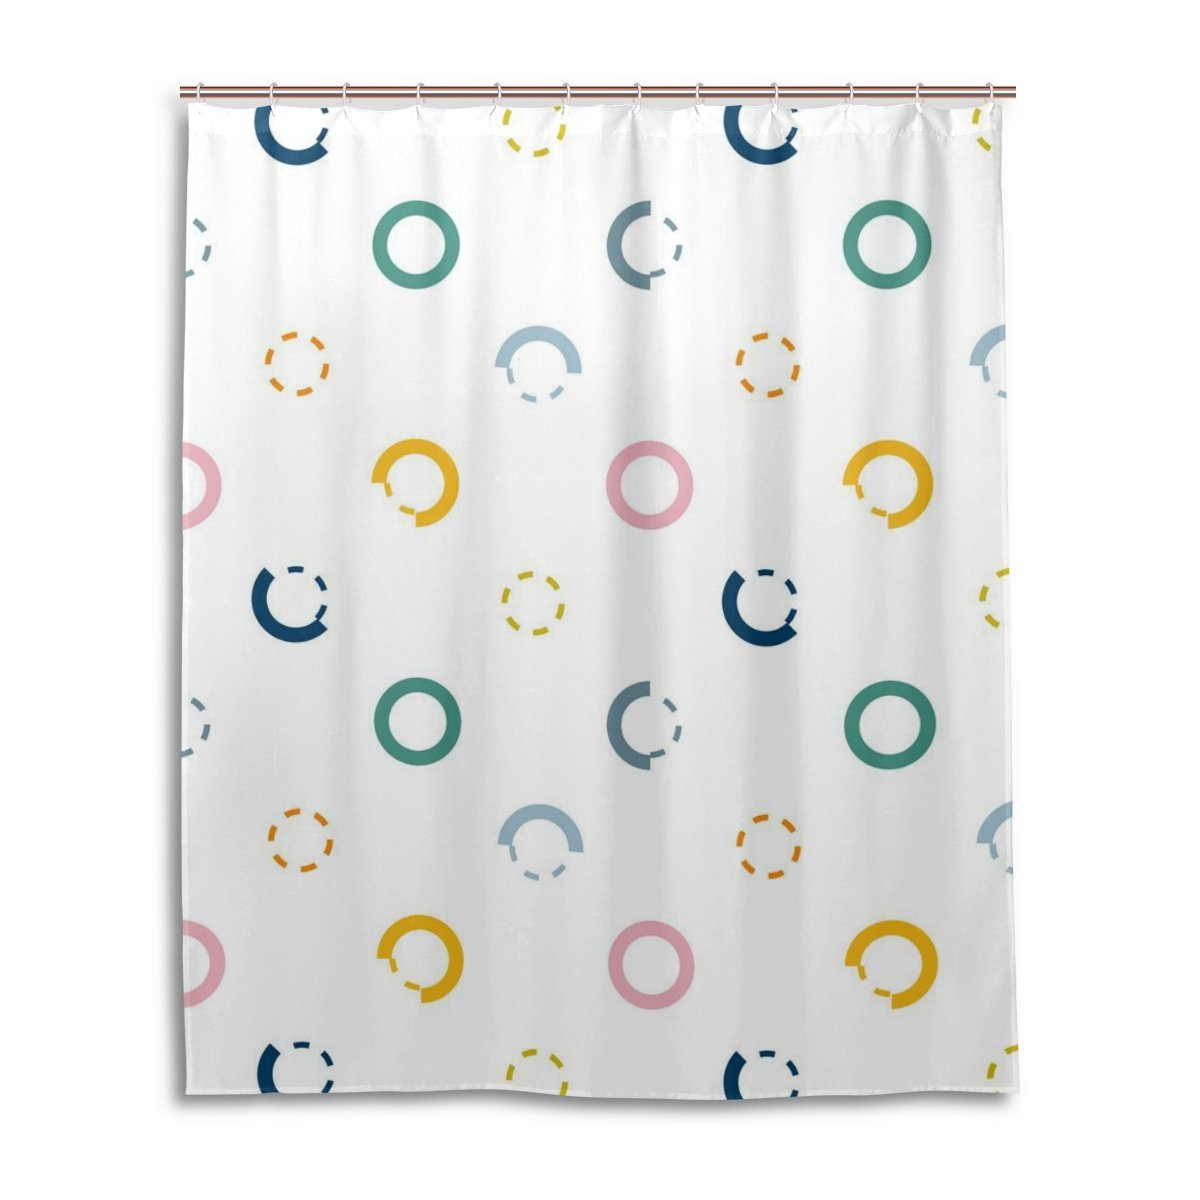 Get Quotations Suabo Polyester Waterproof Fabric Shower Curtain Decorative Bathroom With 12 Hooks 60 W